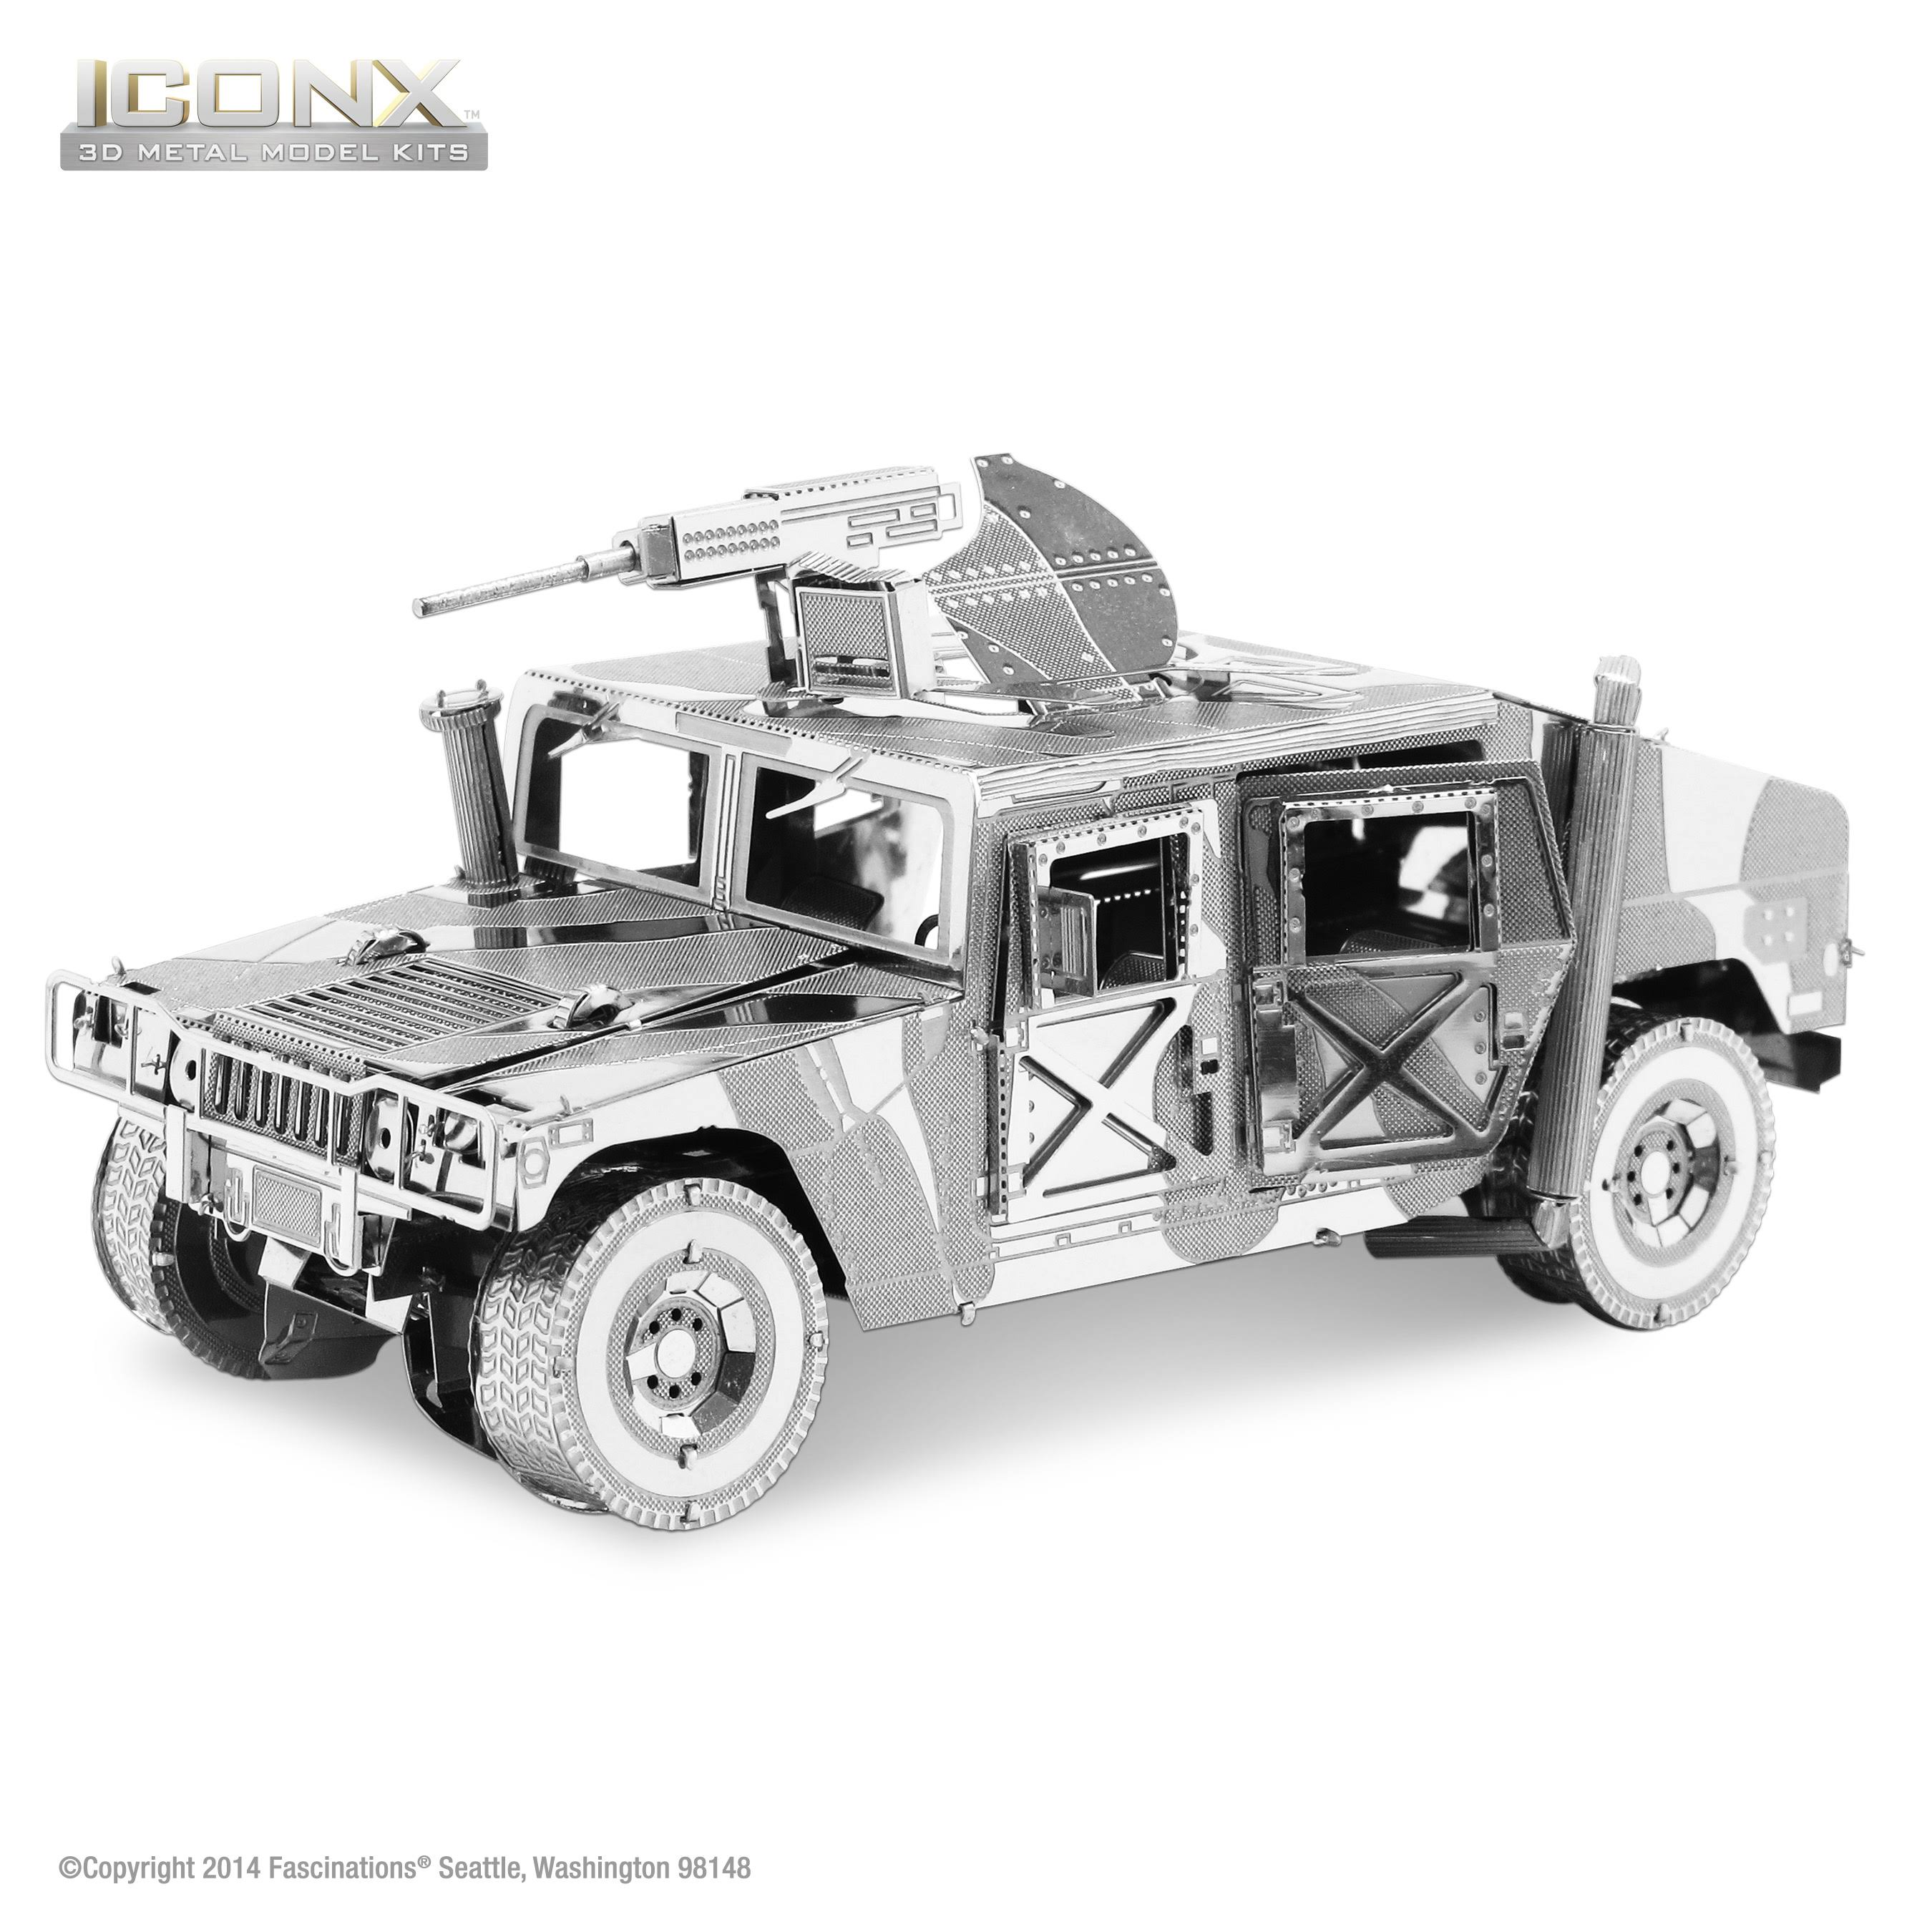 ICONX - Humvee 3D Metal Model Kit